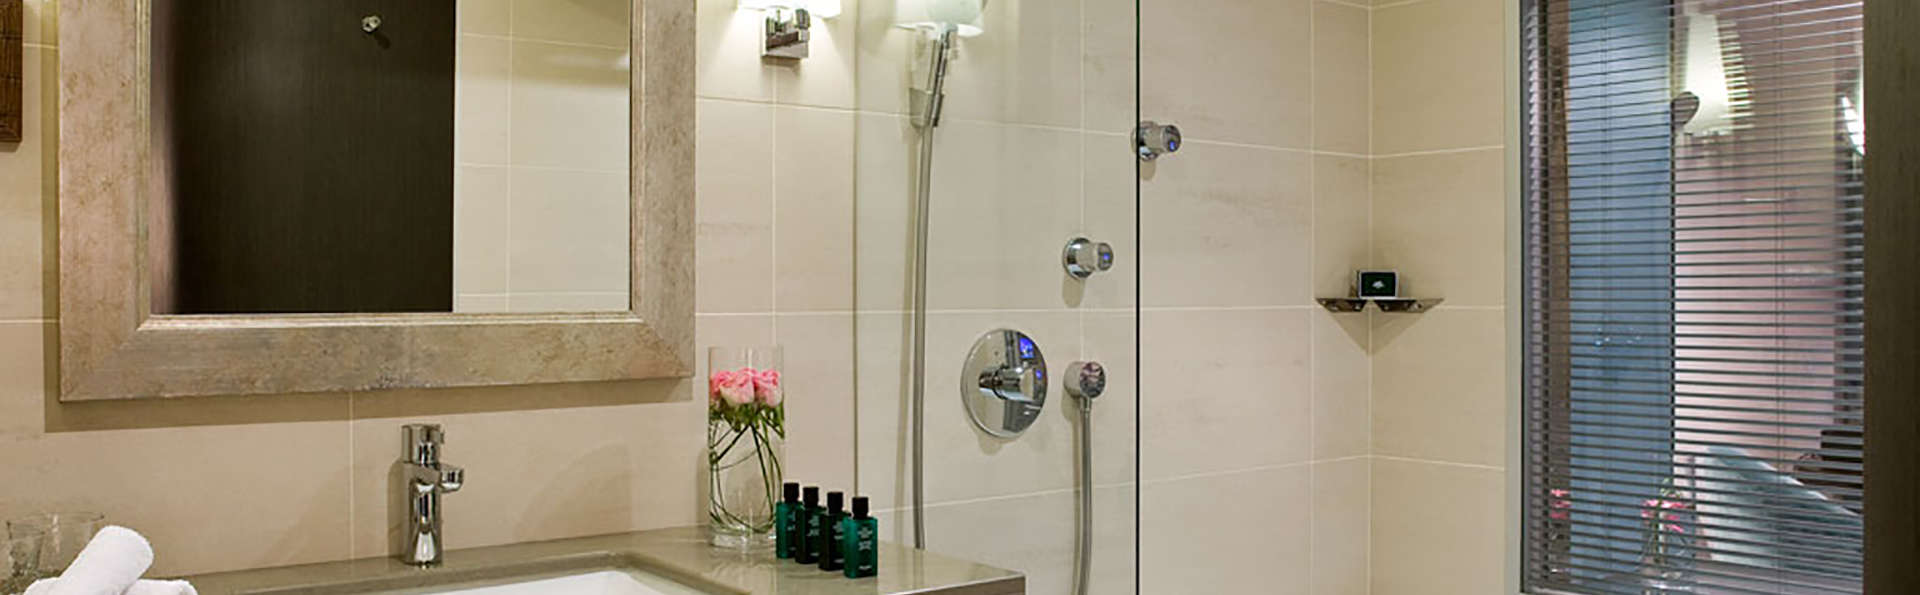 Sofitel Marseille - Edit_Bathroom2.jpg